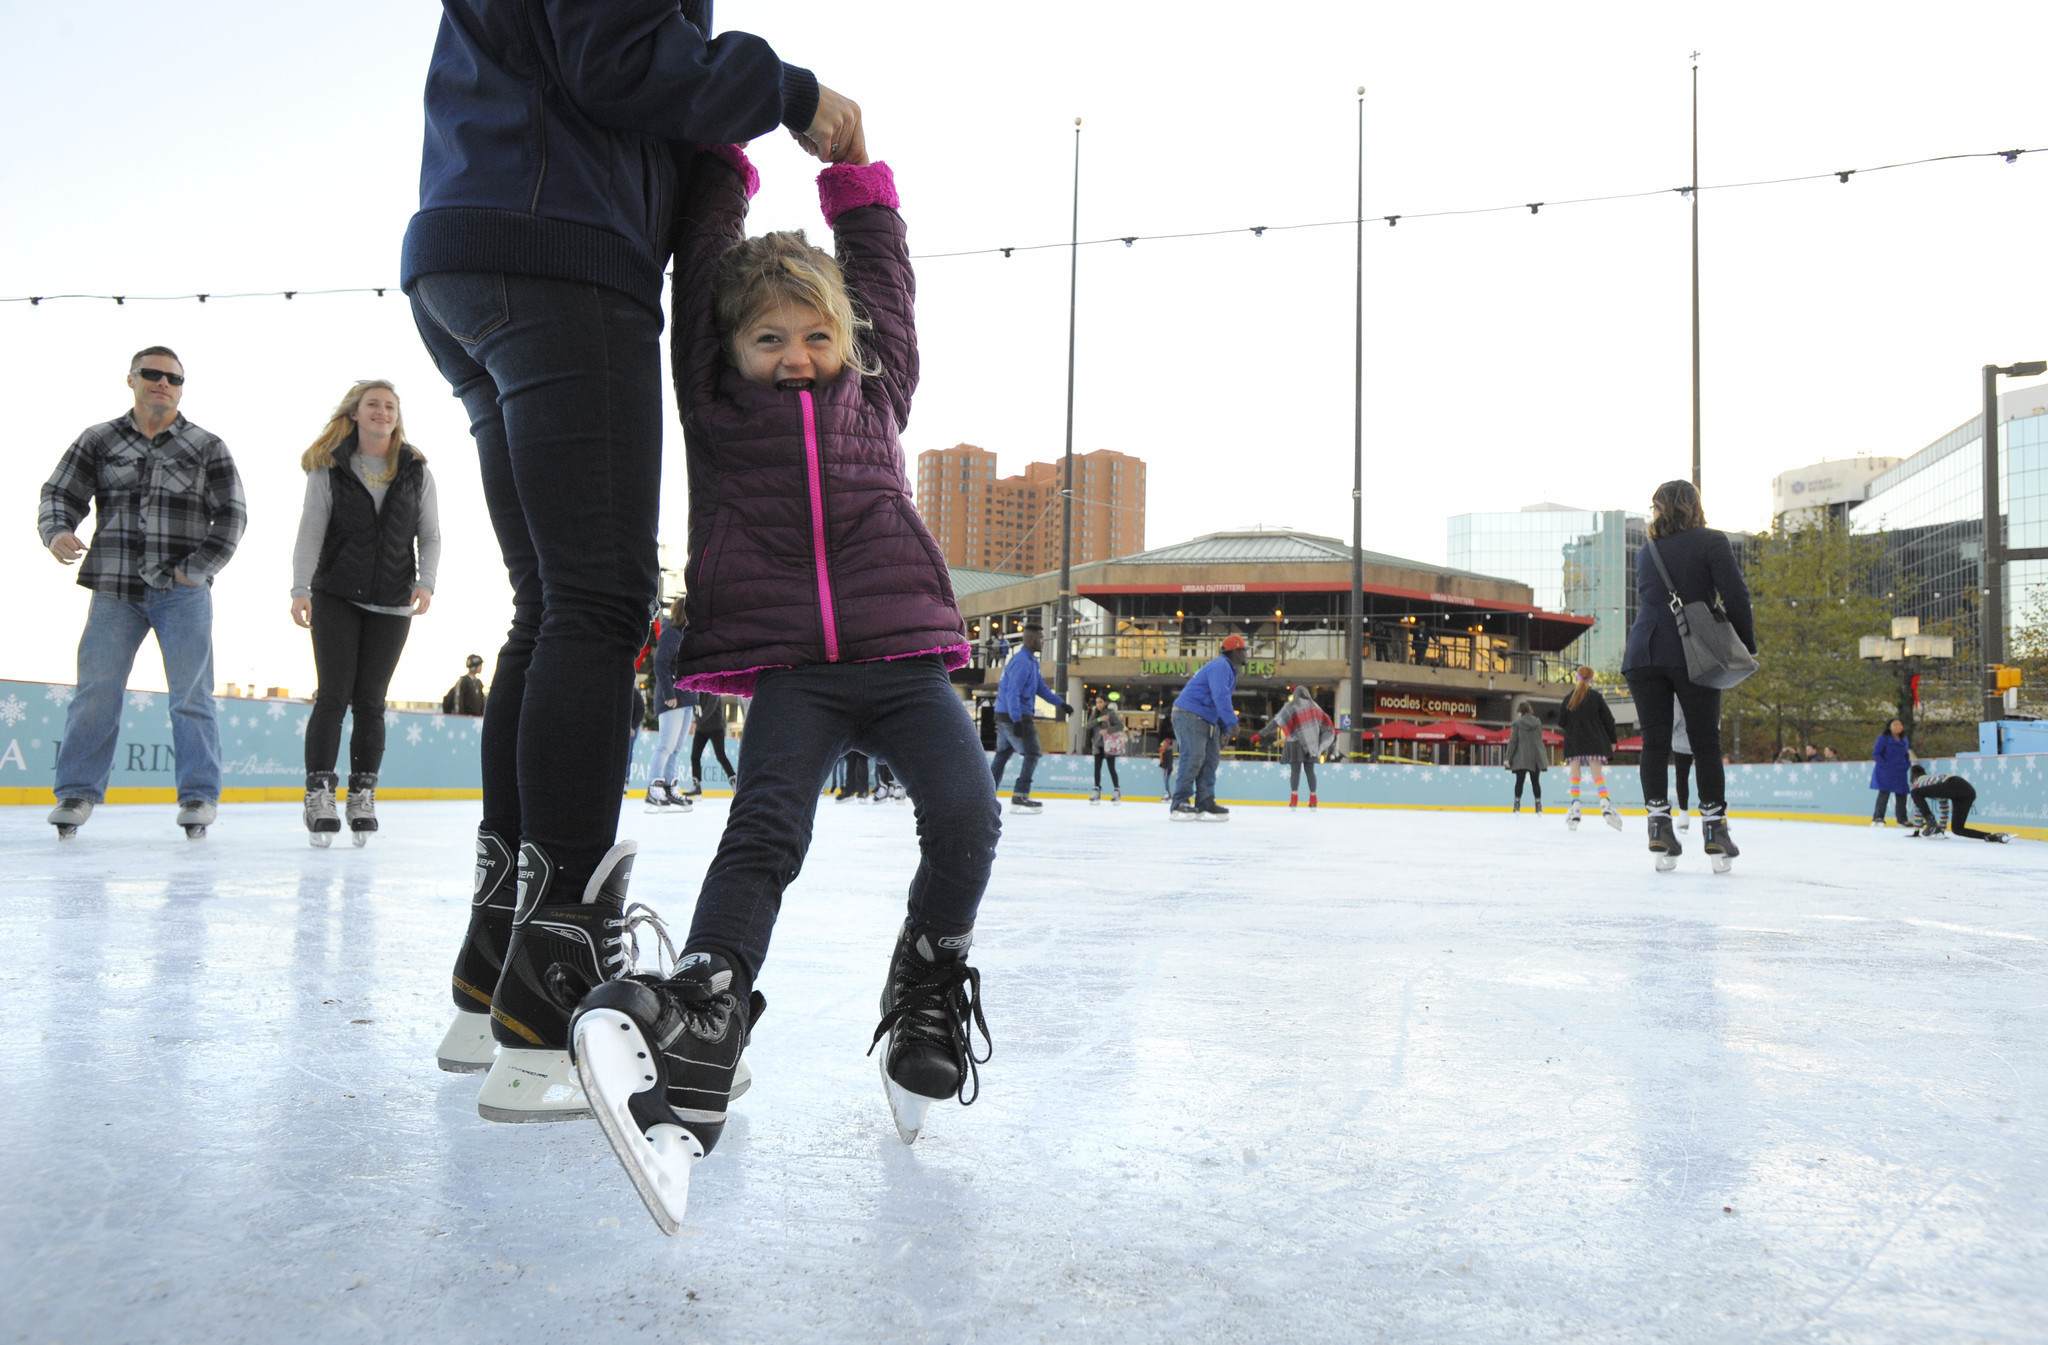 Roller skating rink in maryland - Baltimore Ice Rink Returns To Inner Harbor This Weekend Baltimore Sun